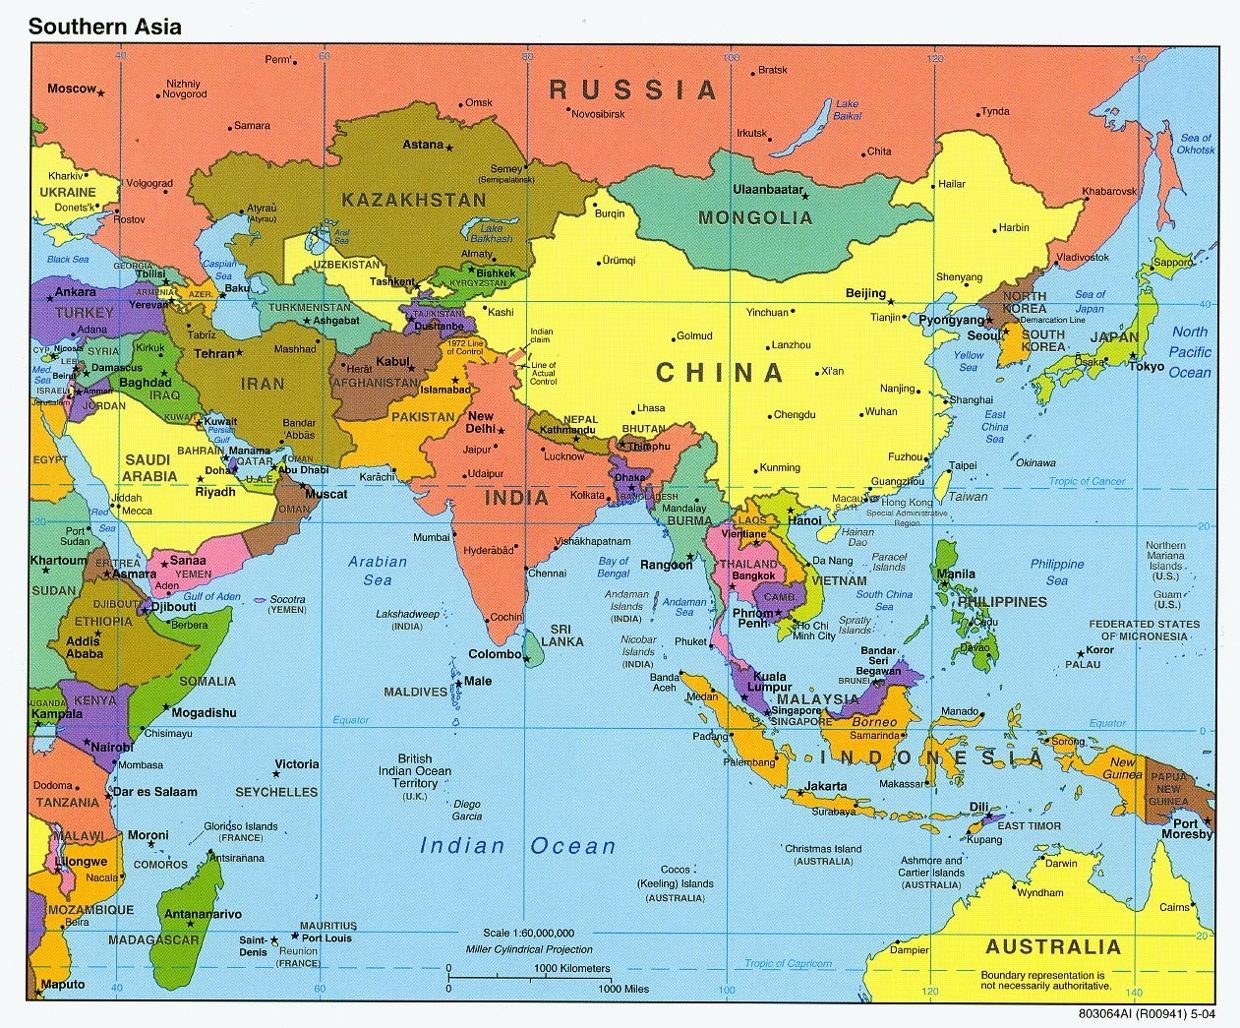 Plateau Of Tibet On Map Of Asia.The Qinghai Tibet Plateau Is The Most Important Geologica